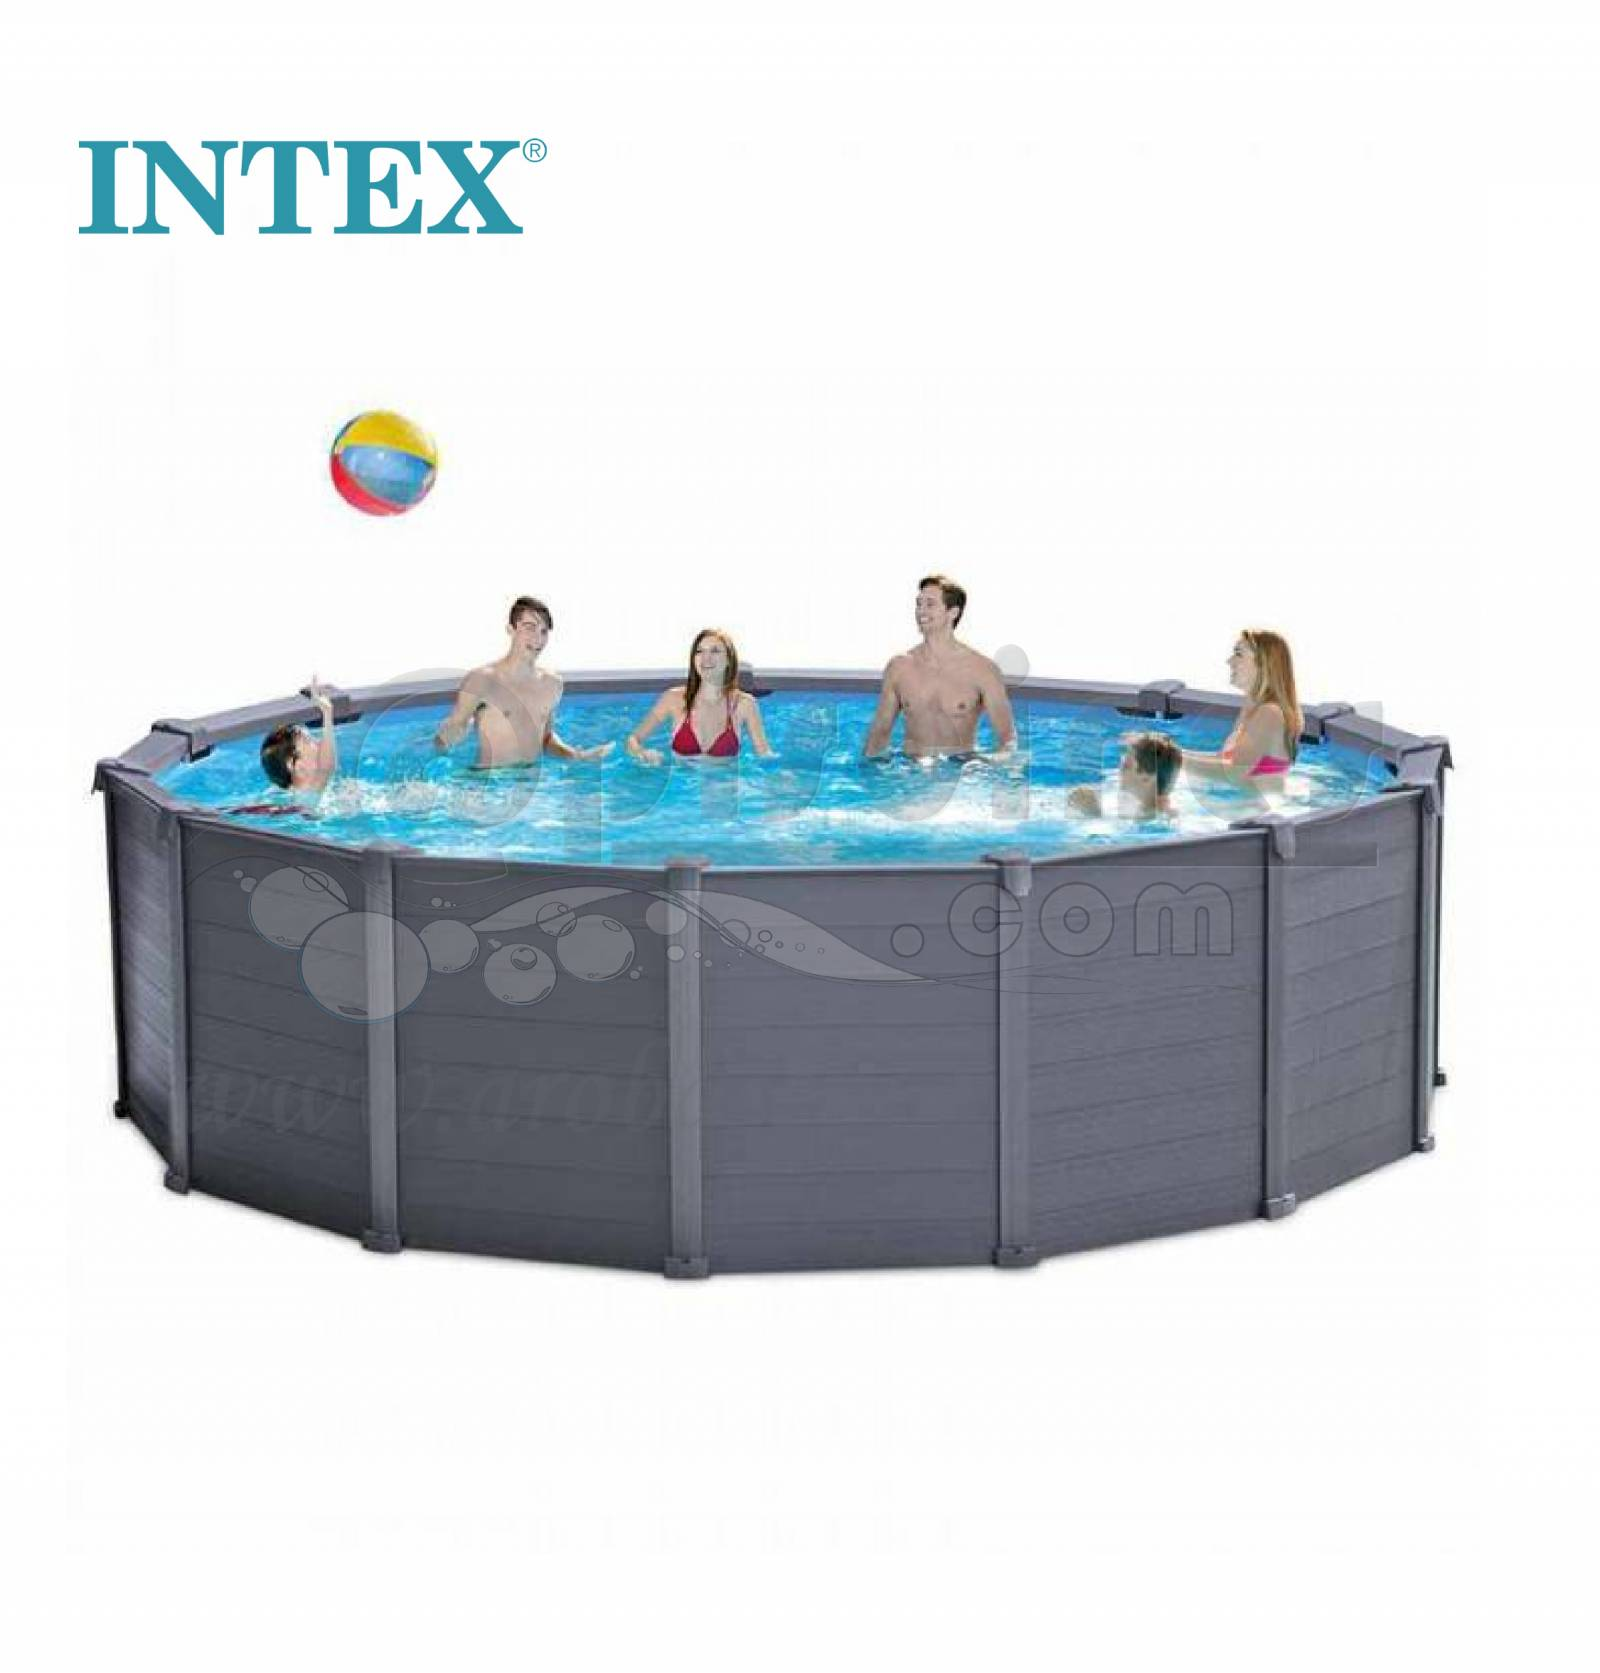 Piscine tubulaire hors sol ronde 4 78m intex graphite for Piscine hors sol intex ronde